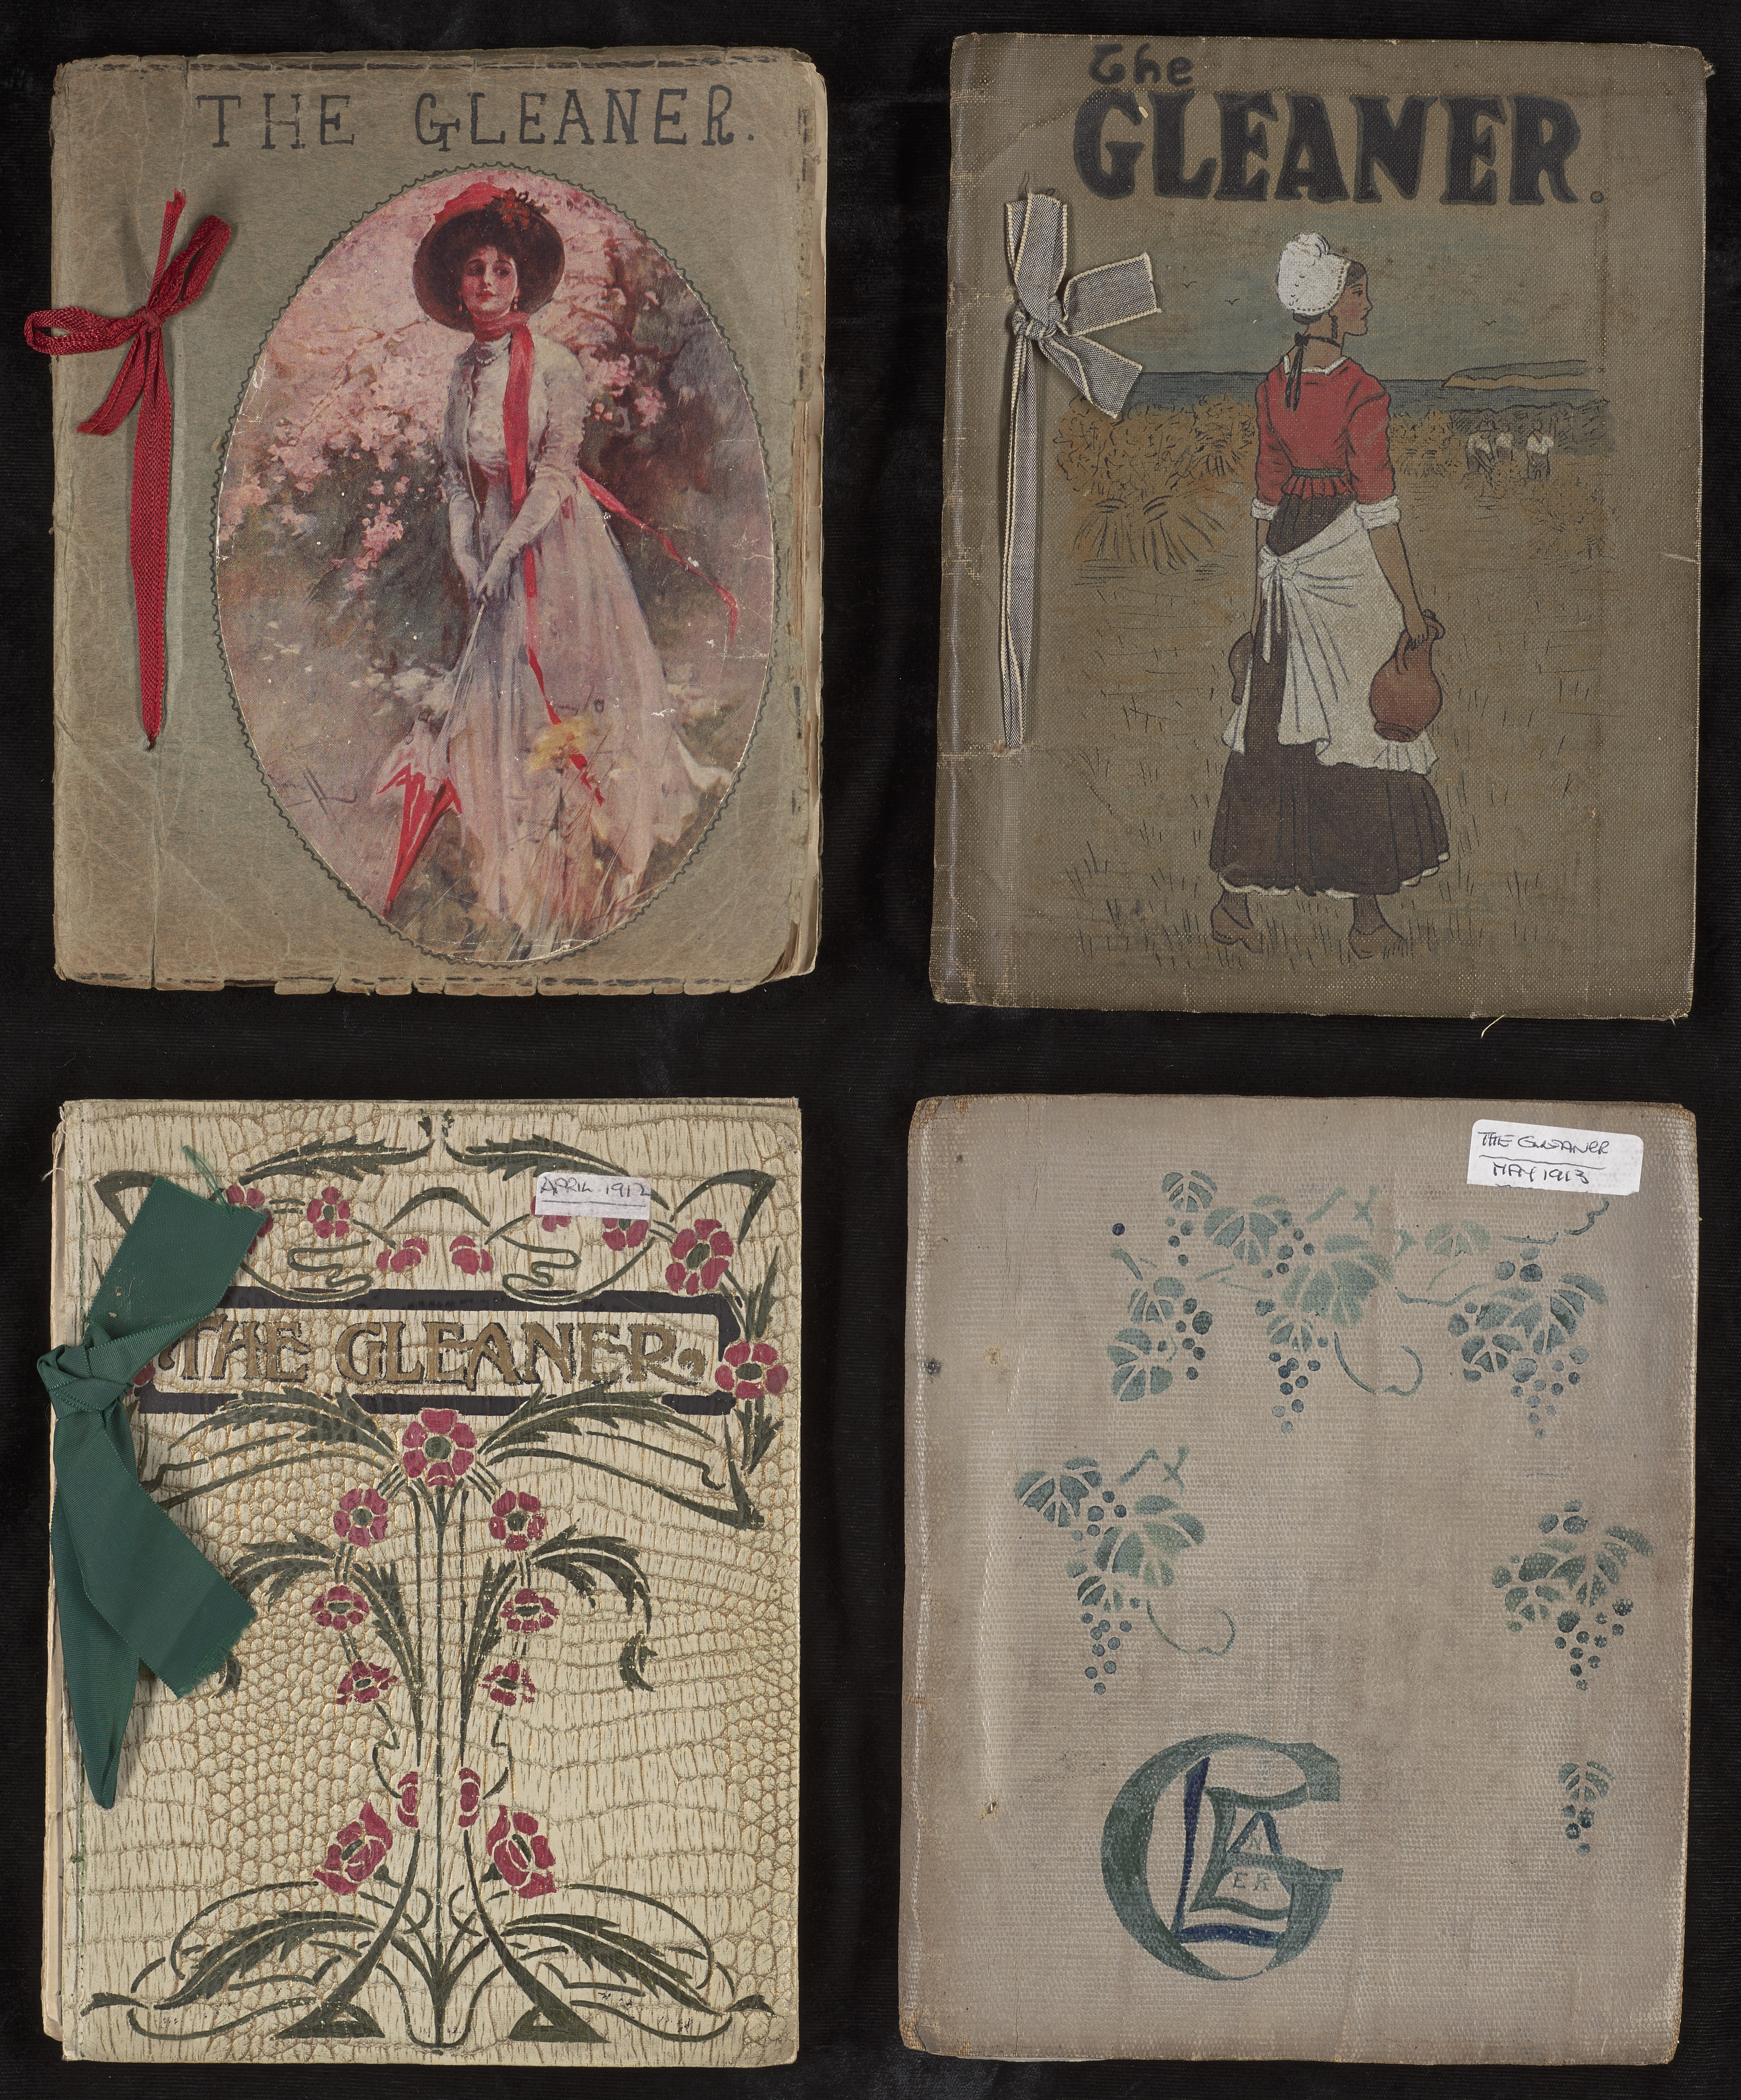 Caption 1: Cover designs for The Gleaner were contributed by members. These four early issues date from 1910-13. (Not yet cataloged, Library Associates Endowment Fund.)